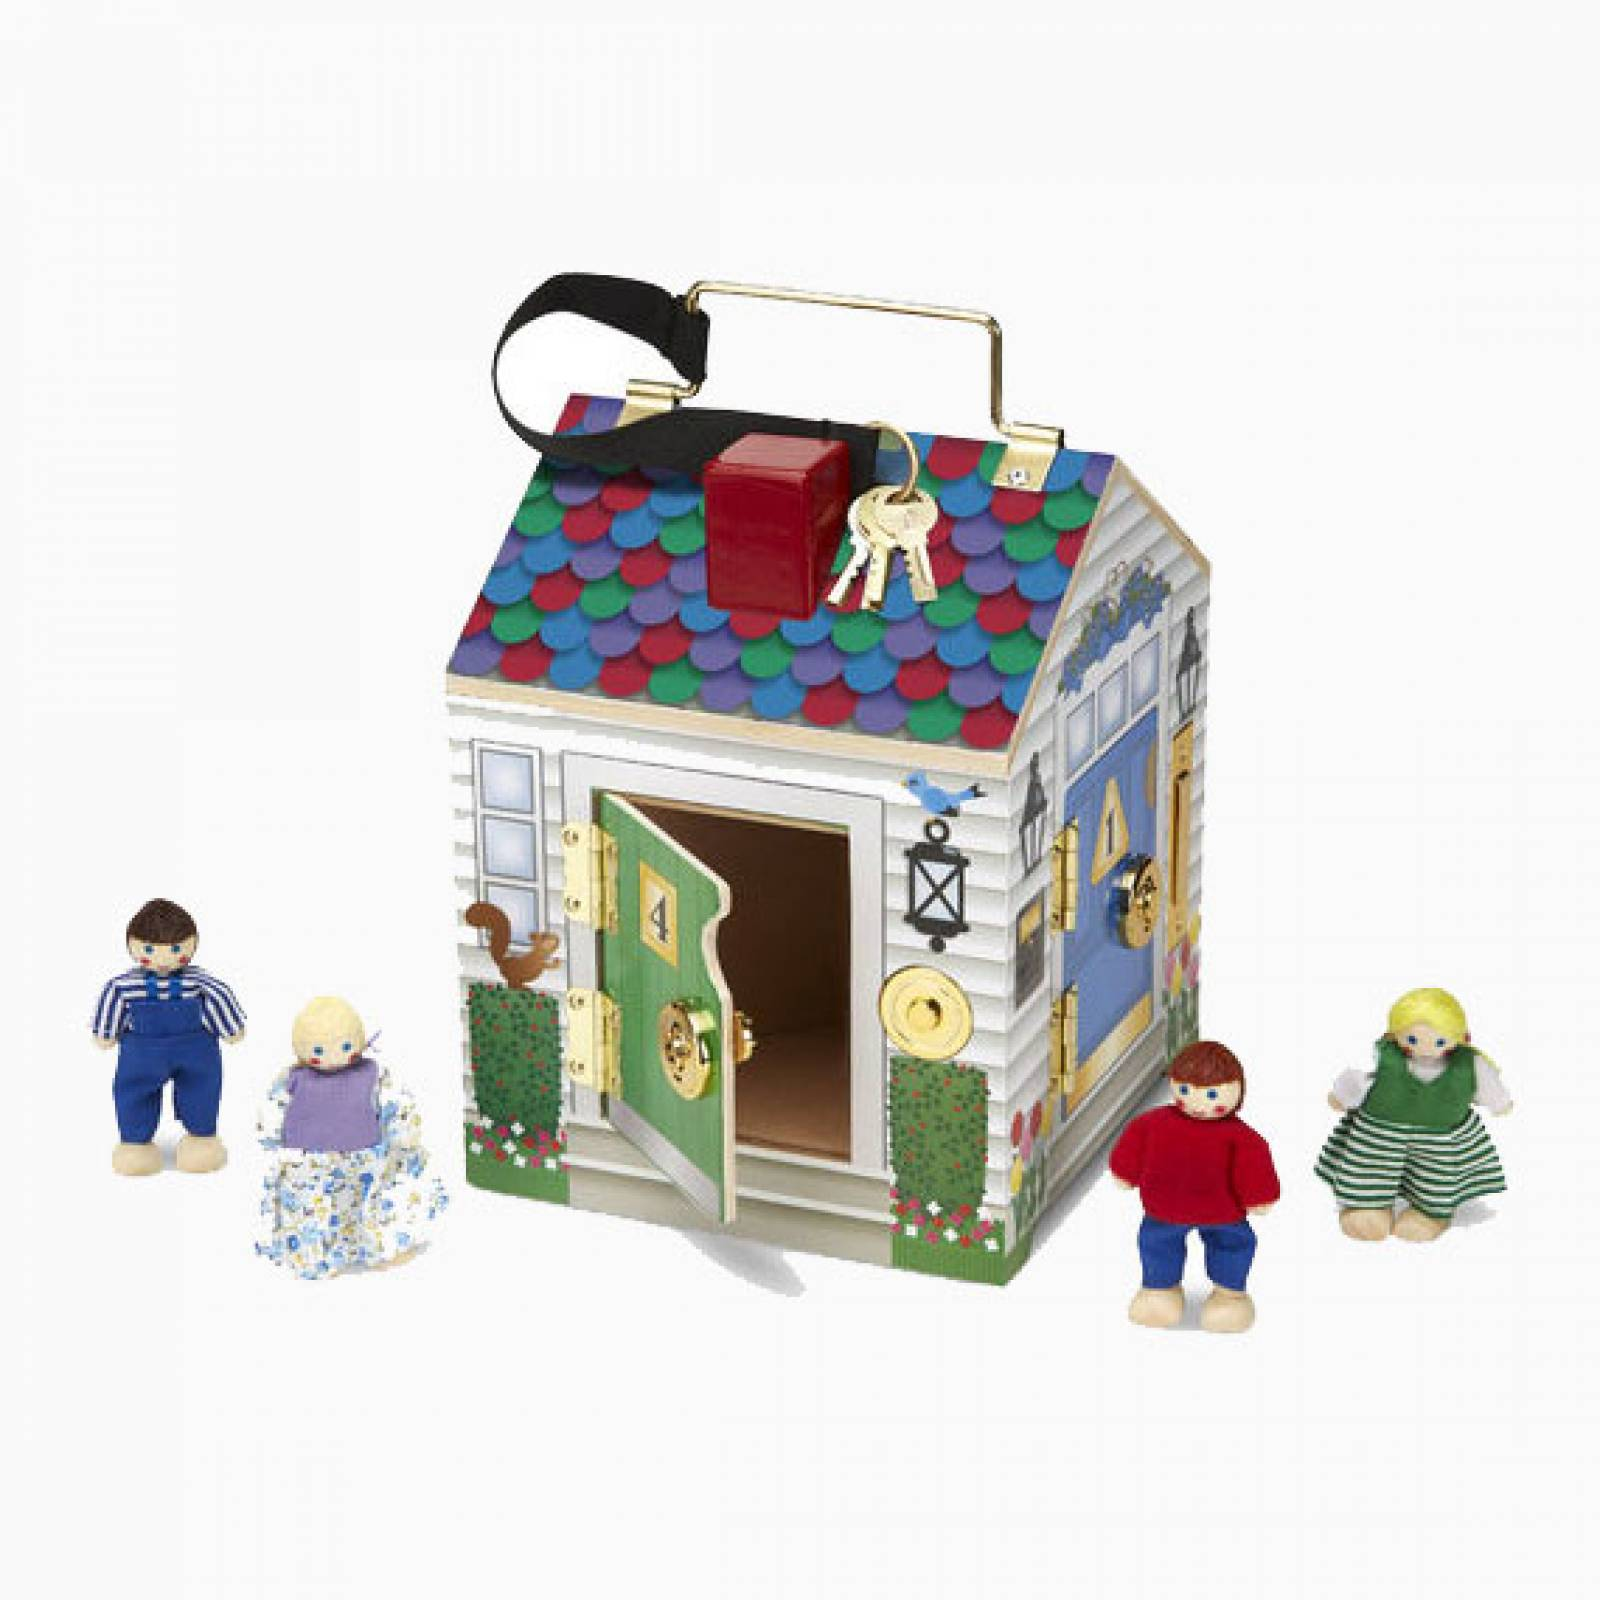 Doorbell House With Keys and Bells 3yrs+